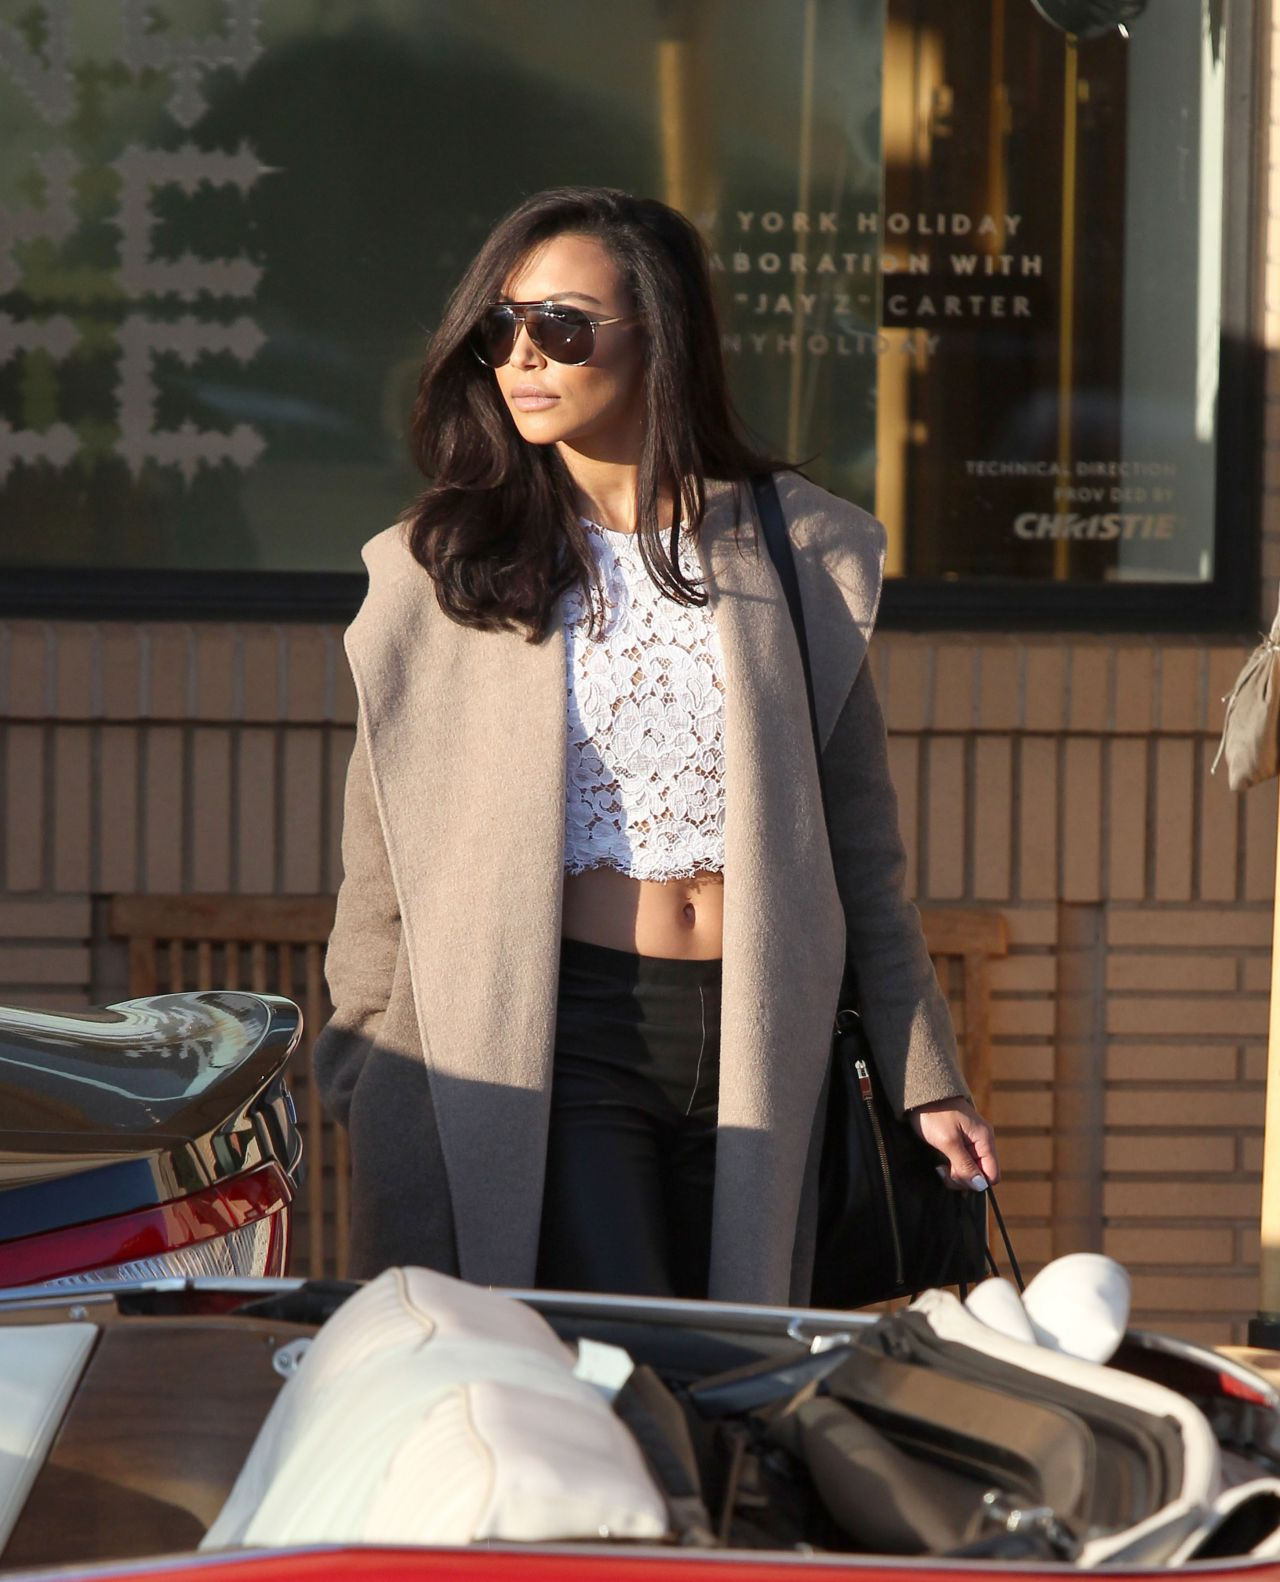 Naya Rivera Street Style - Leaving Barneys New York in Los Angeles - December 2013